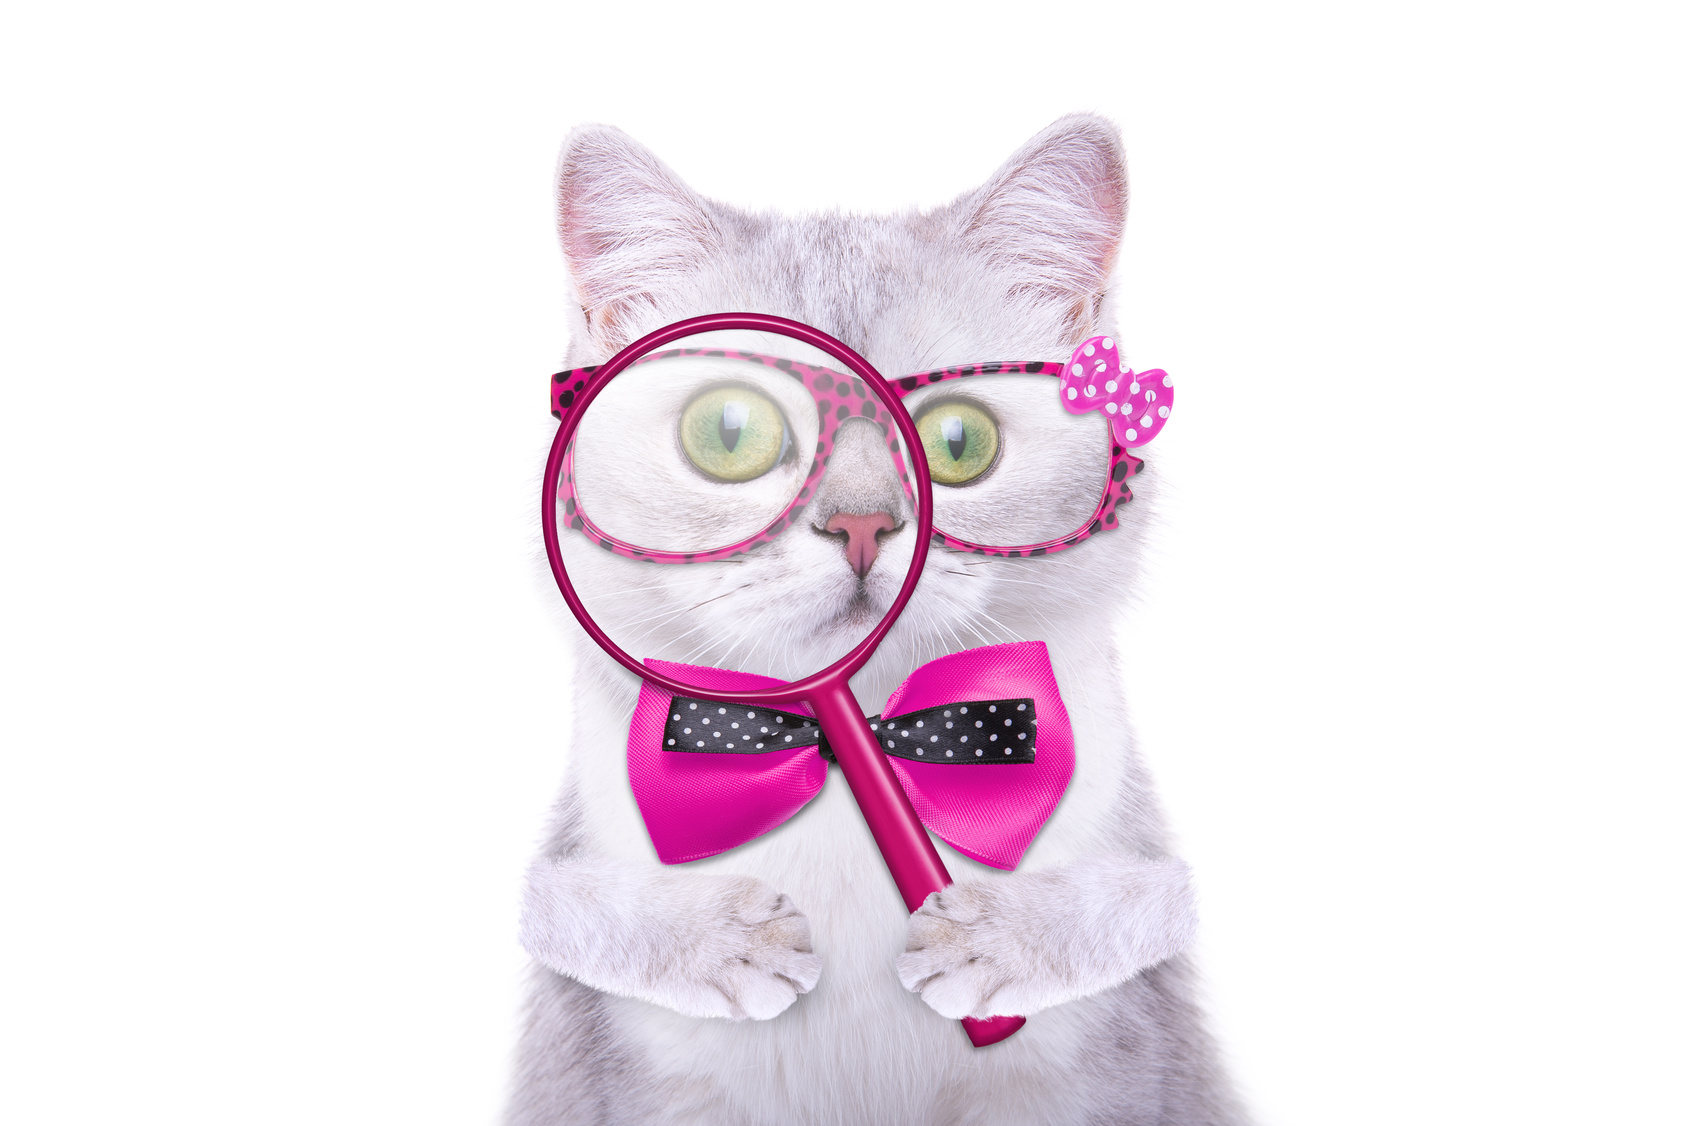 15 Cat Quizzes That Will Make You Smile (And Teach you something too!)